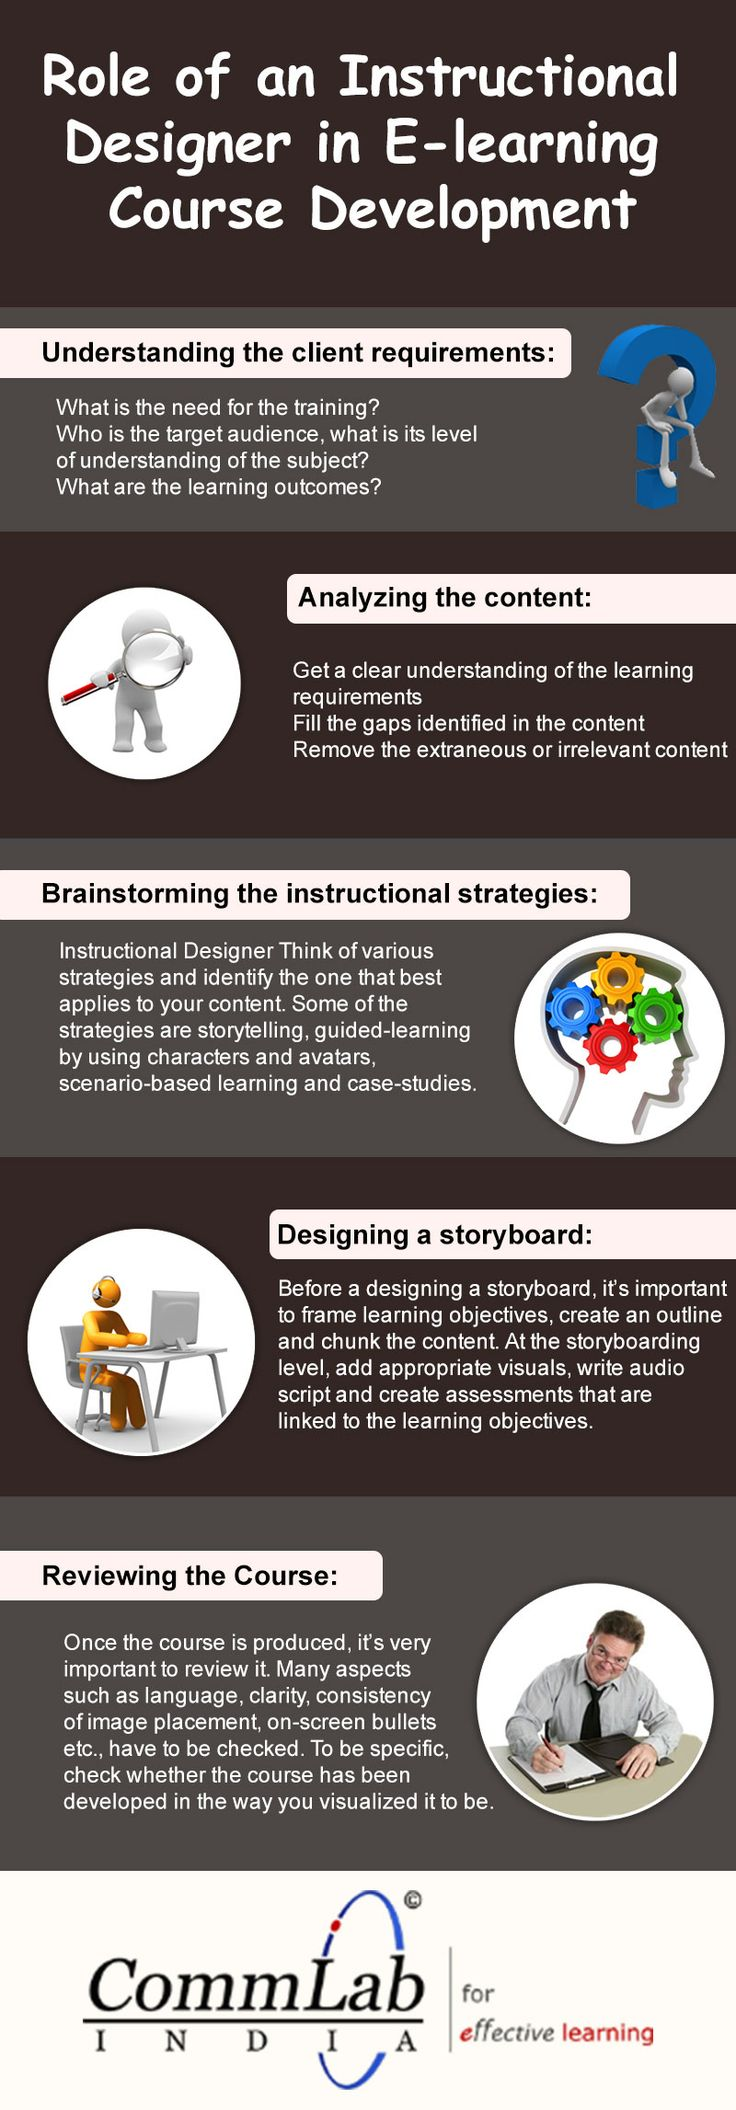 ole of an Instructional Designer in E-learning Course Development – An Infographic